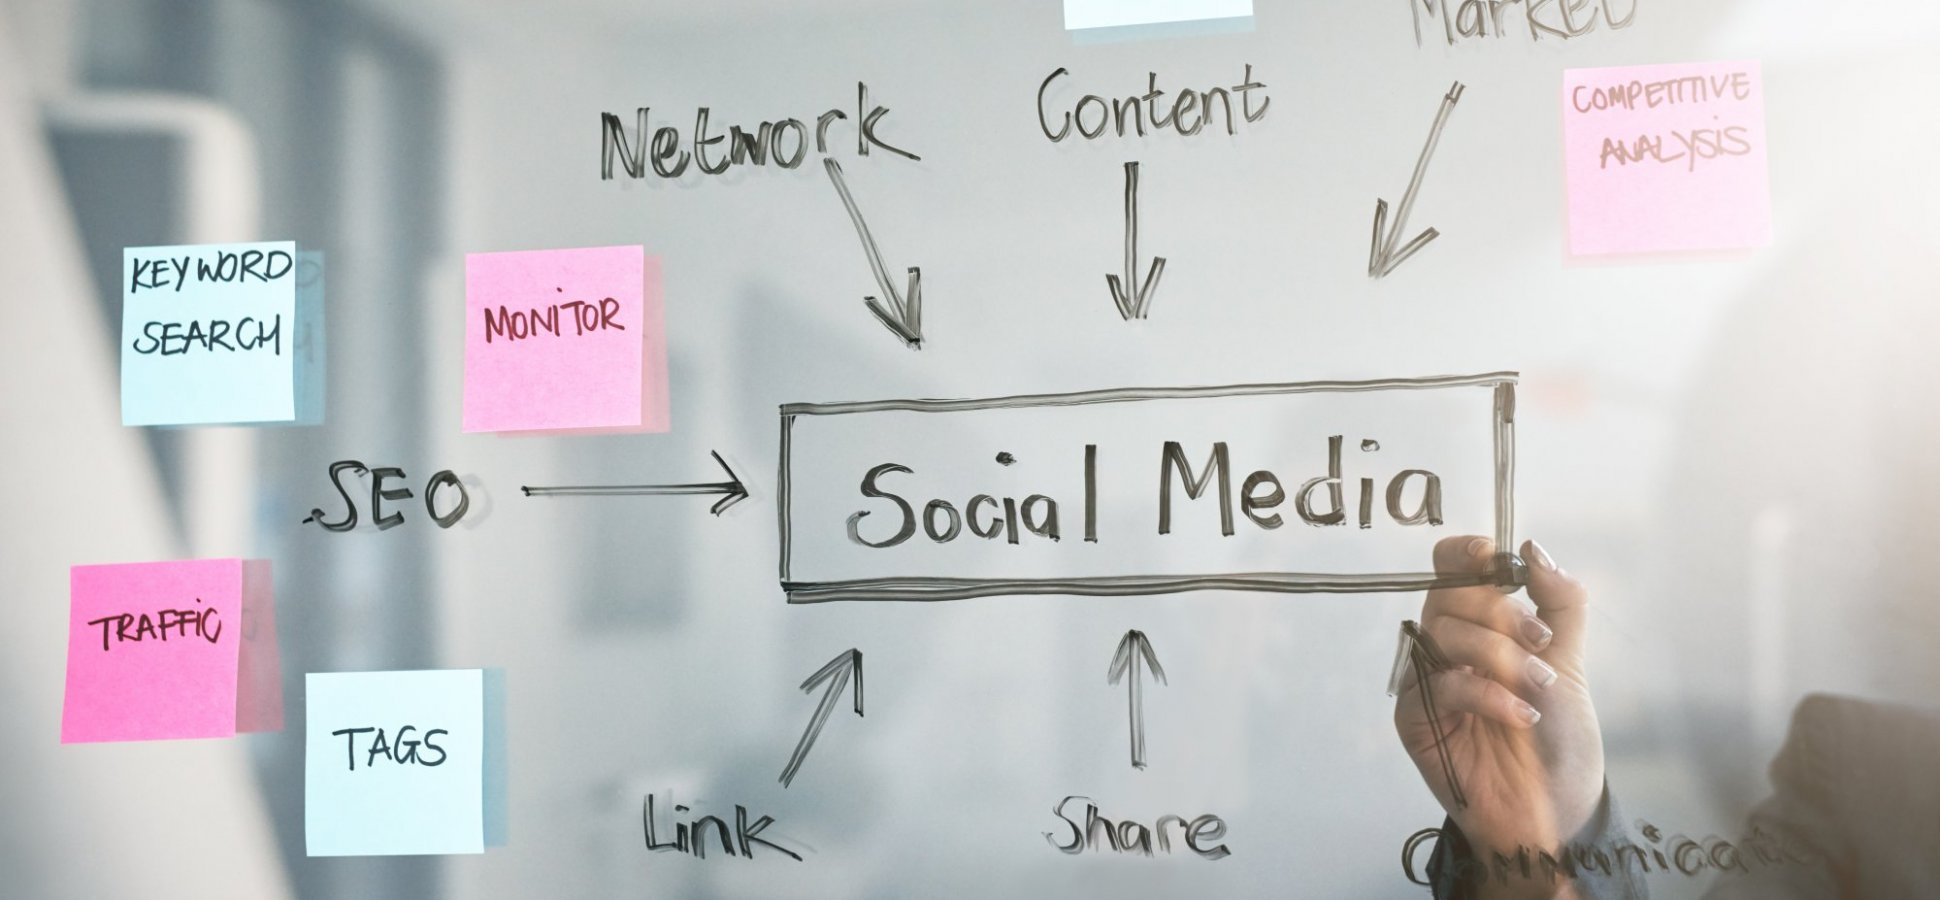 7 Ways to Optimize Your Marketing Strategy via Social Media in 2019